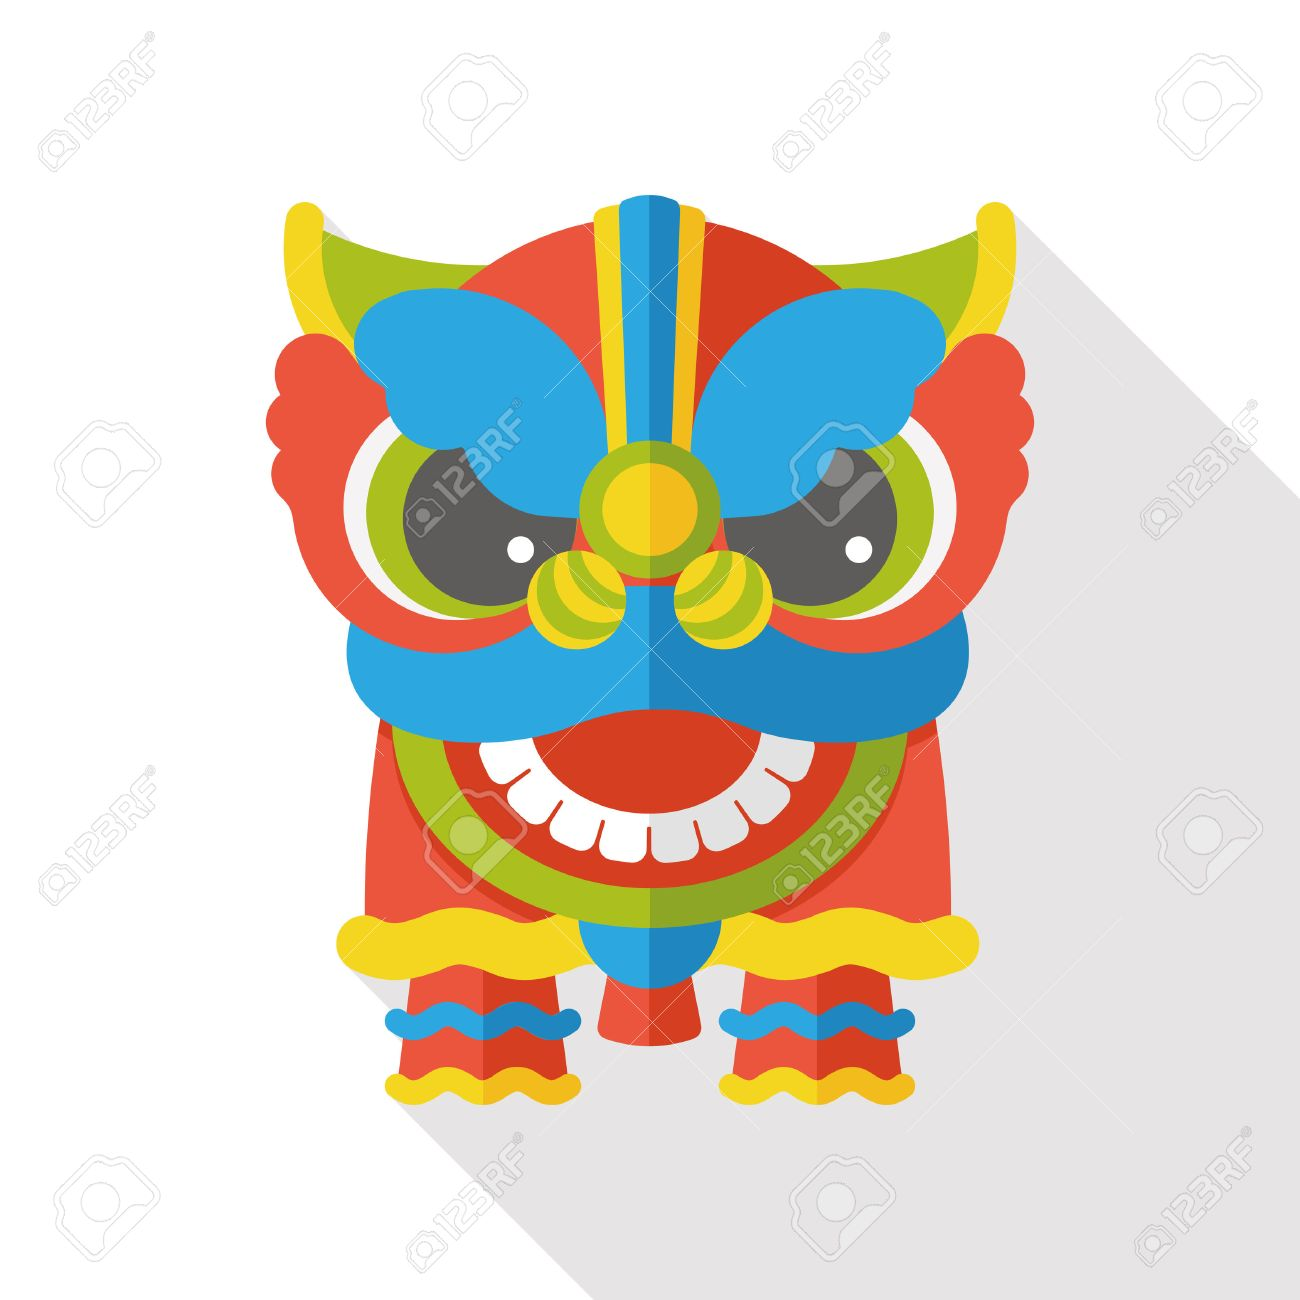 Chinese New Year flat icon; The dragon and lion dancing head - 47557252